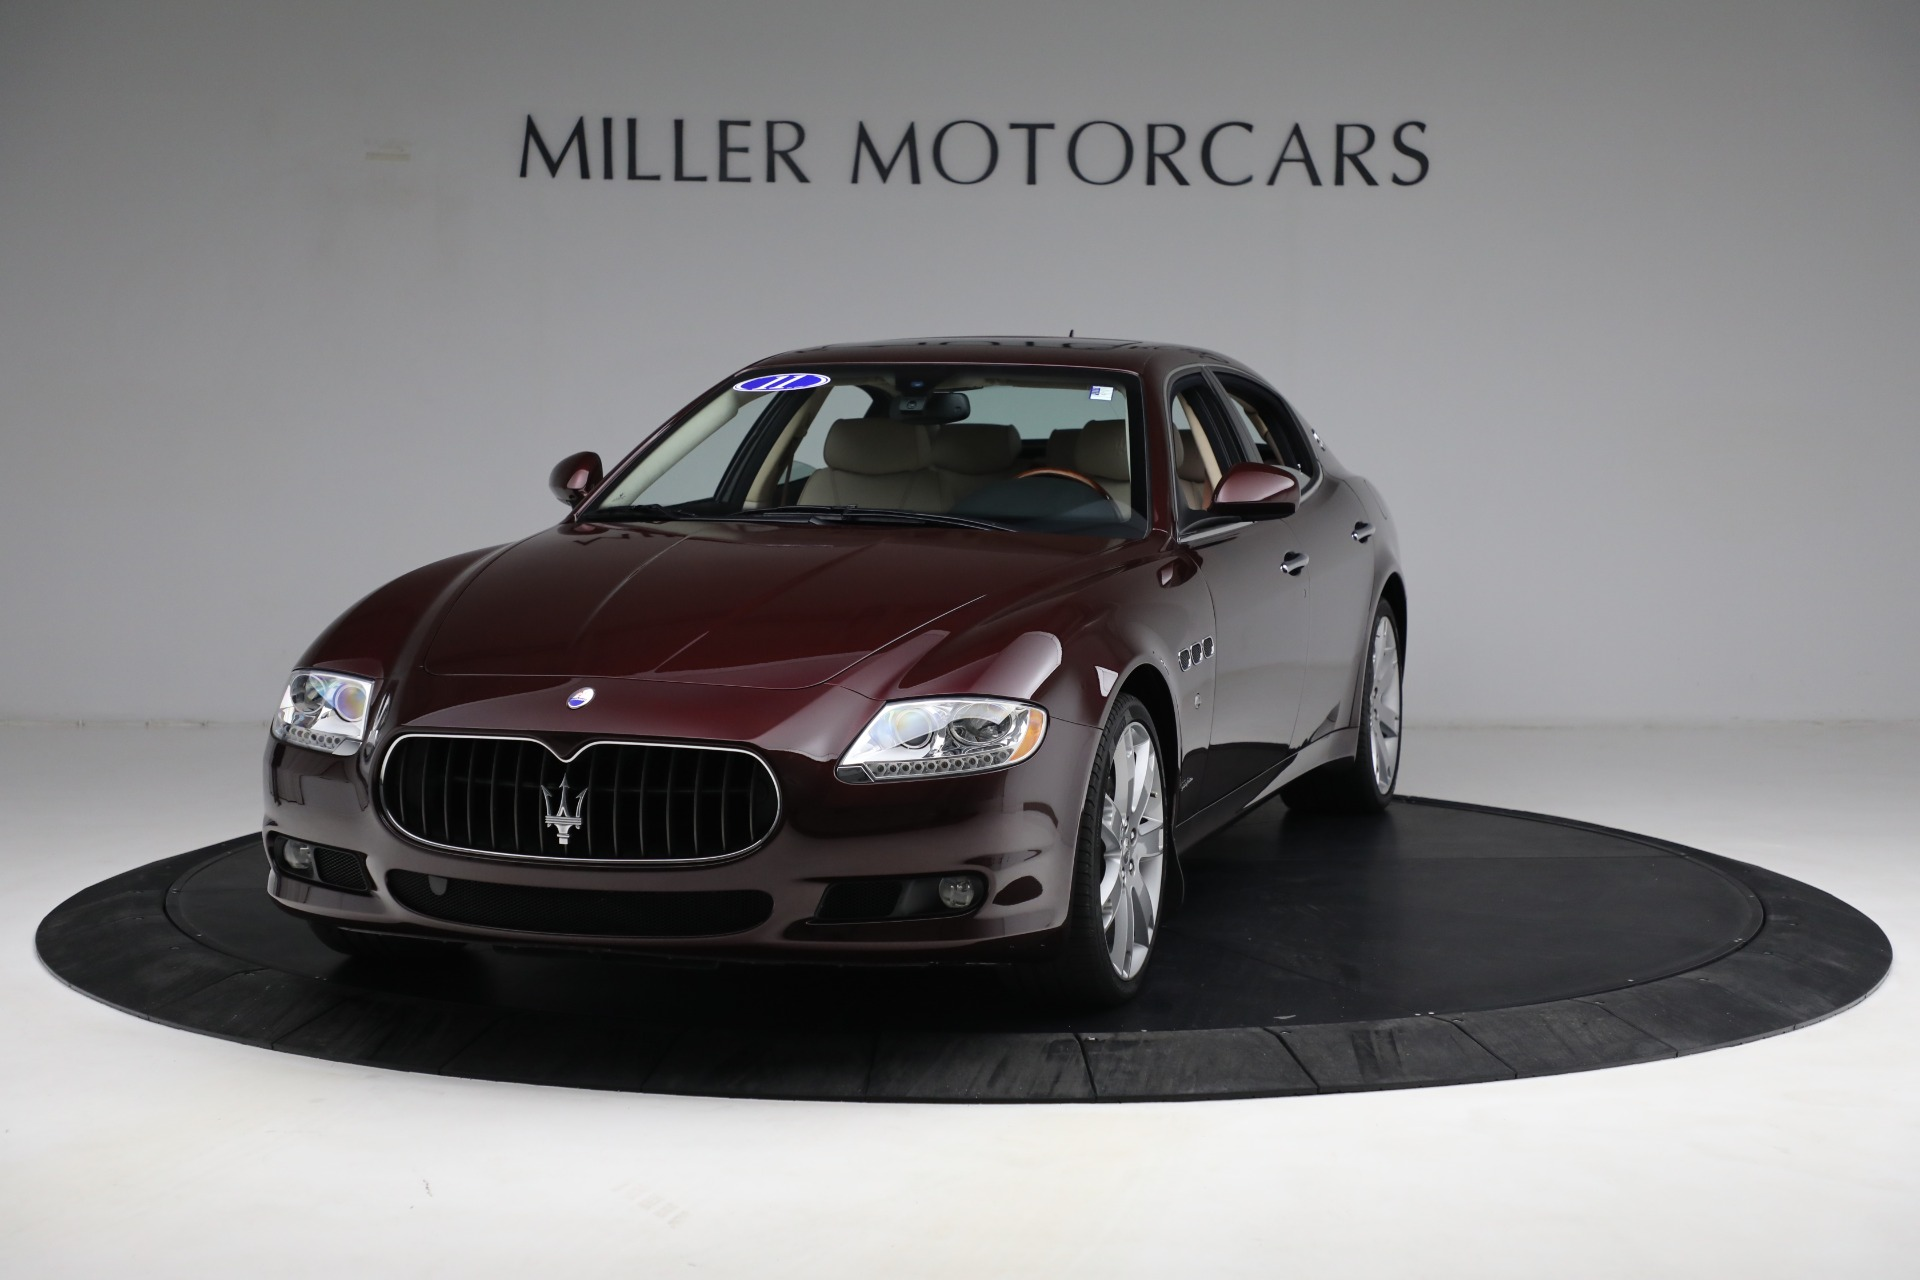 Used 2011 Maserati Quattroporte for sale Sold at Rolls-Royce Motor Cars Greenwich in Greenwich CT 06830 1